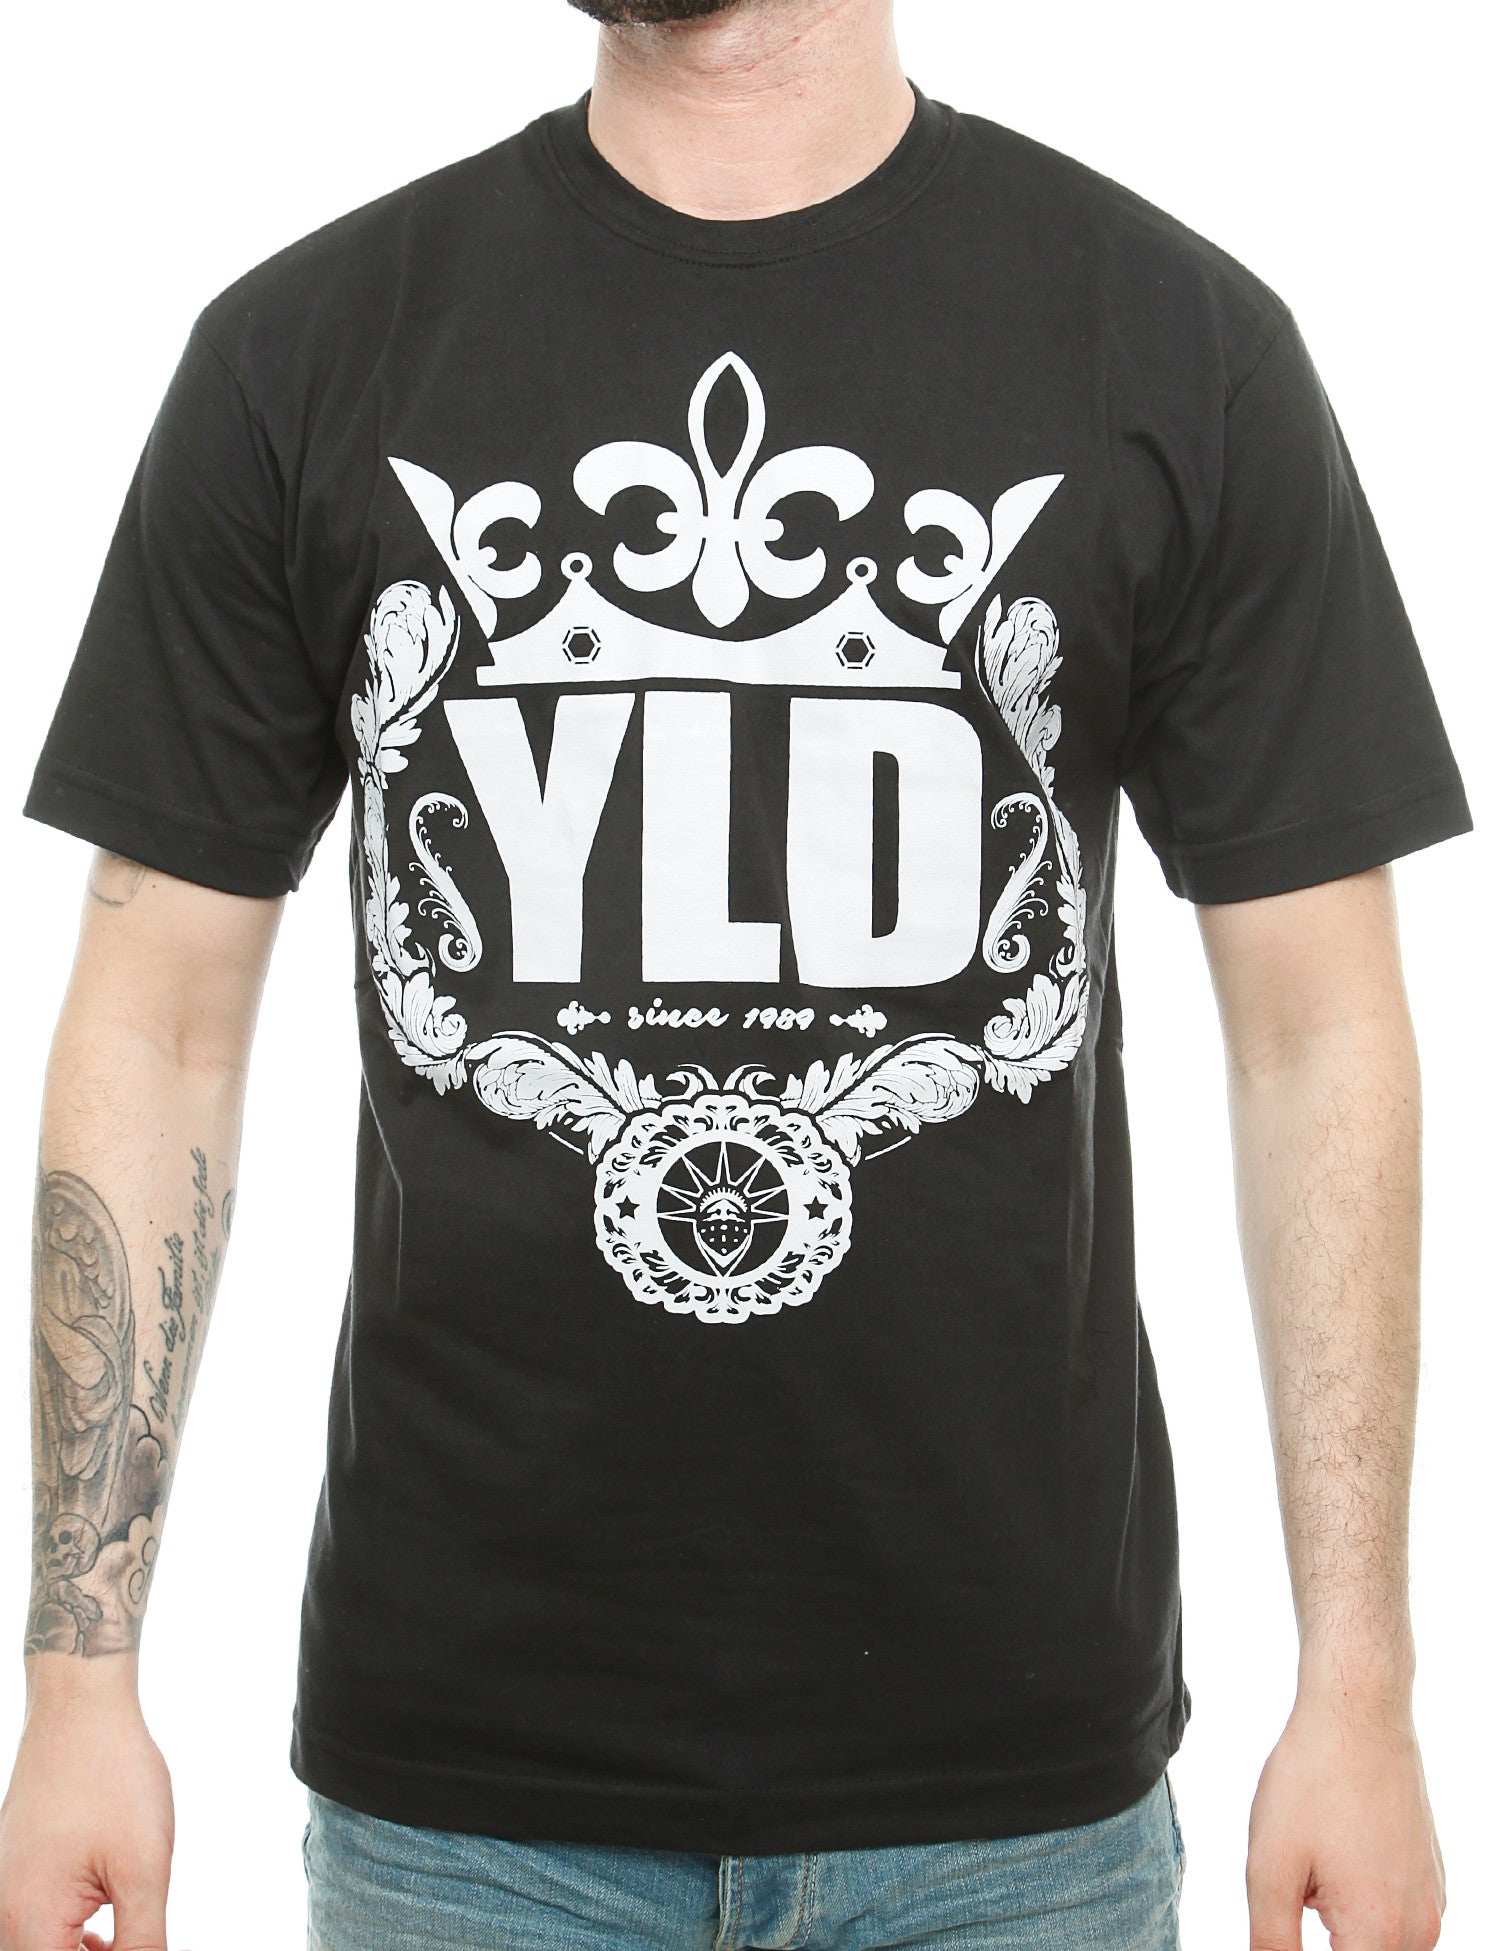 YLD  Spray Crown T-Shirt YLD16-002 Black